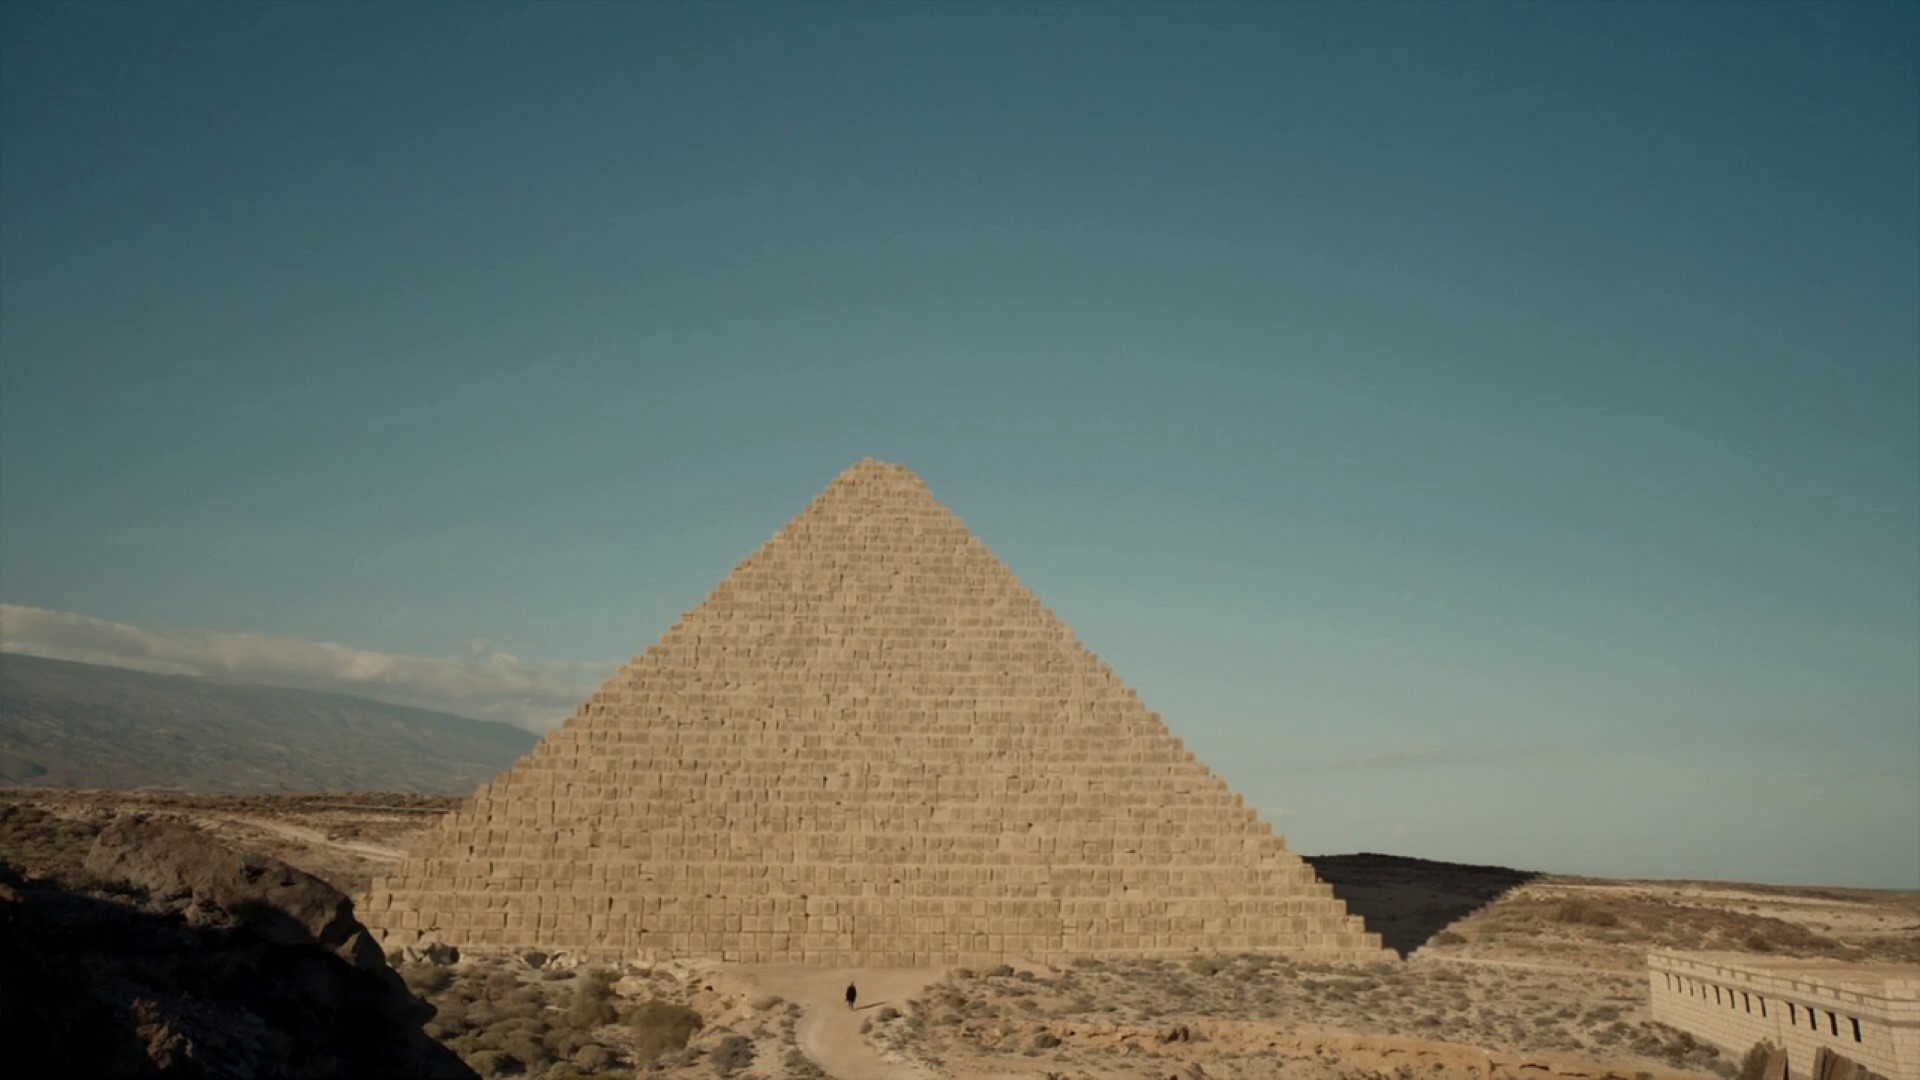 The Pyramid at the End of the World